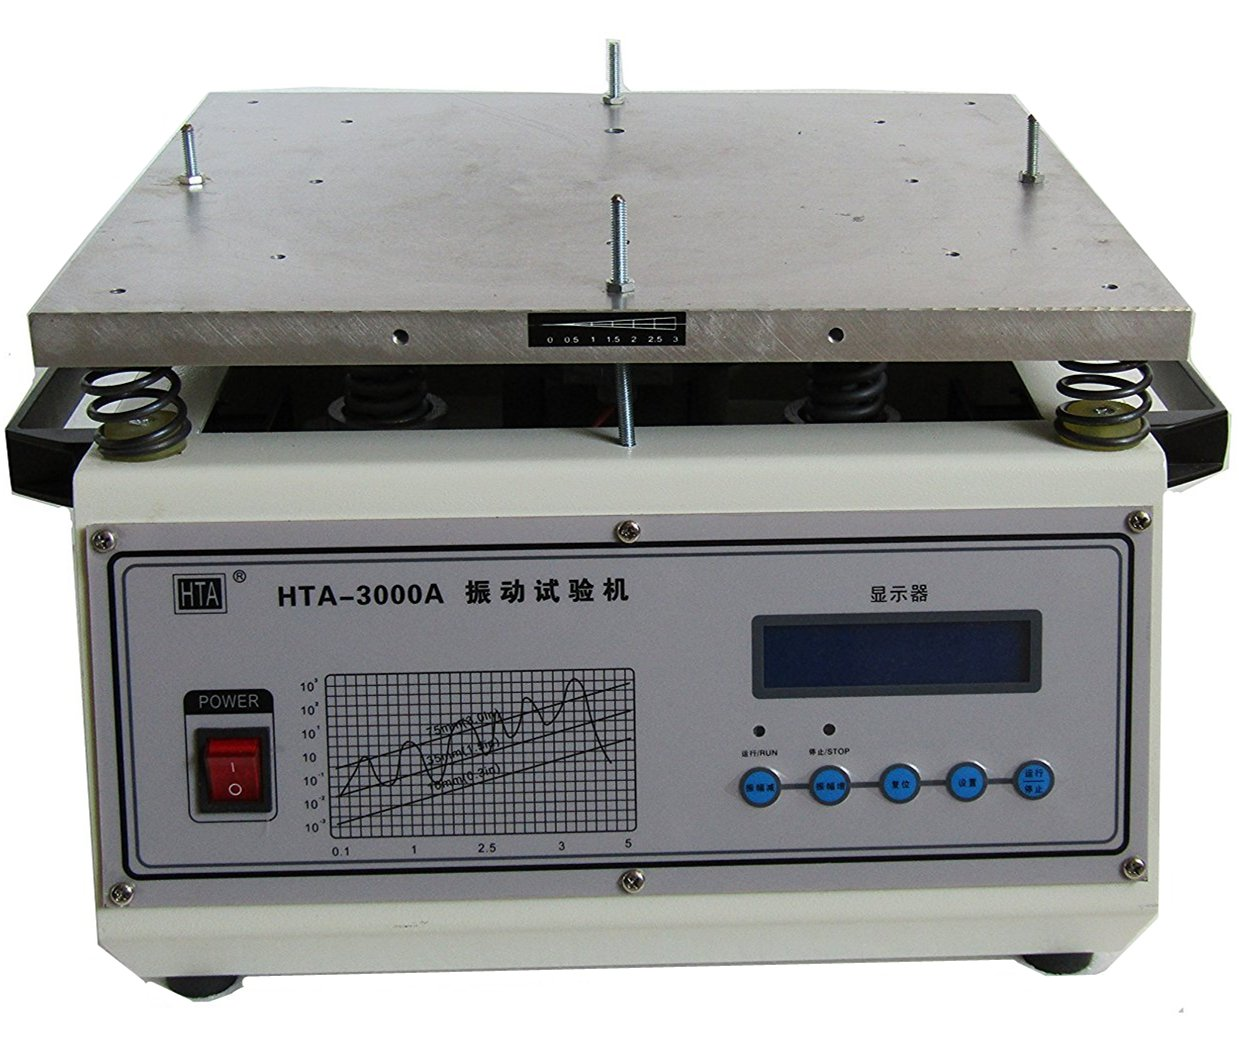 Electromagnetic Shaker vibration test machine Vertical Vibration Testing Machine MAX Load: 30kg